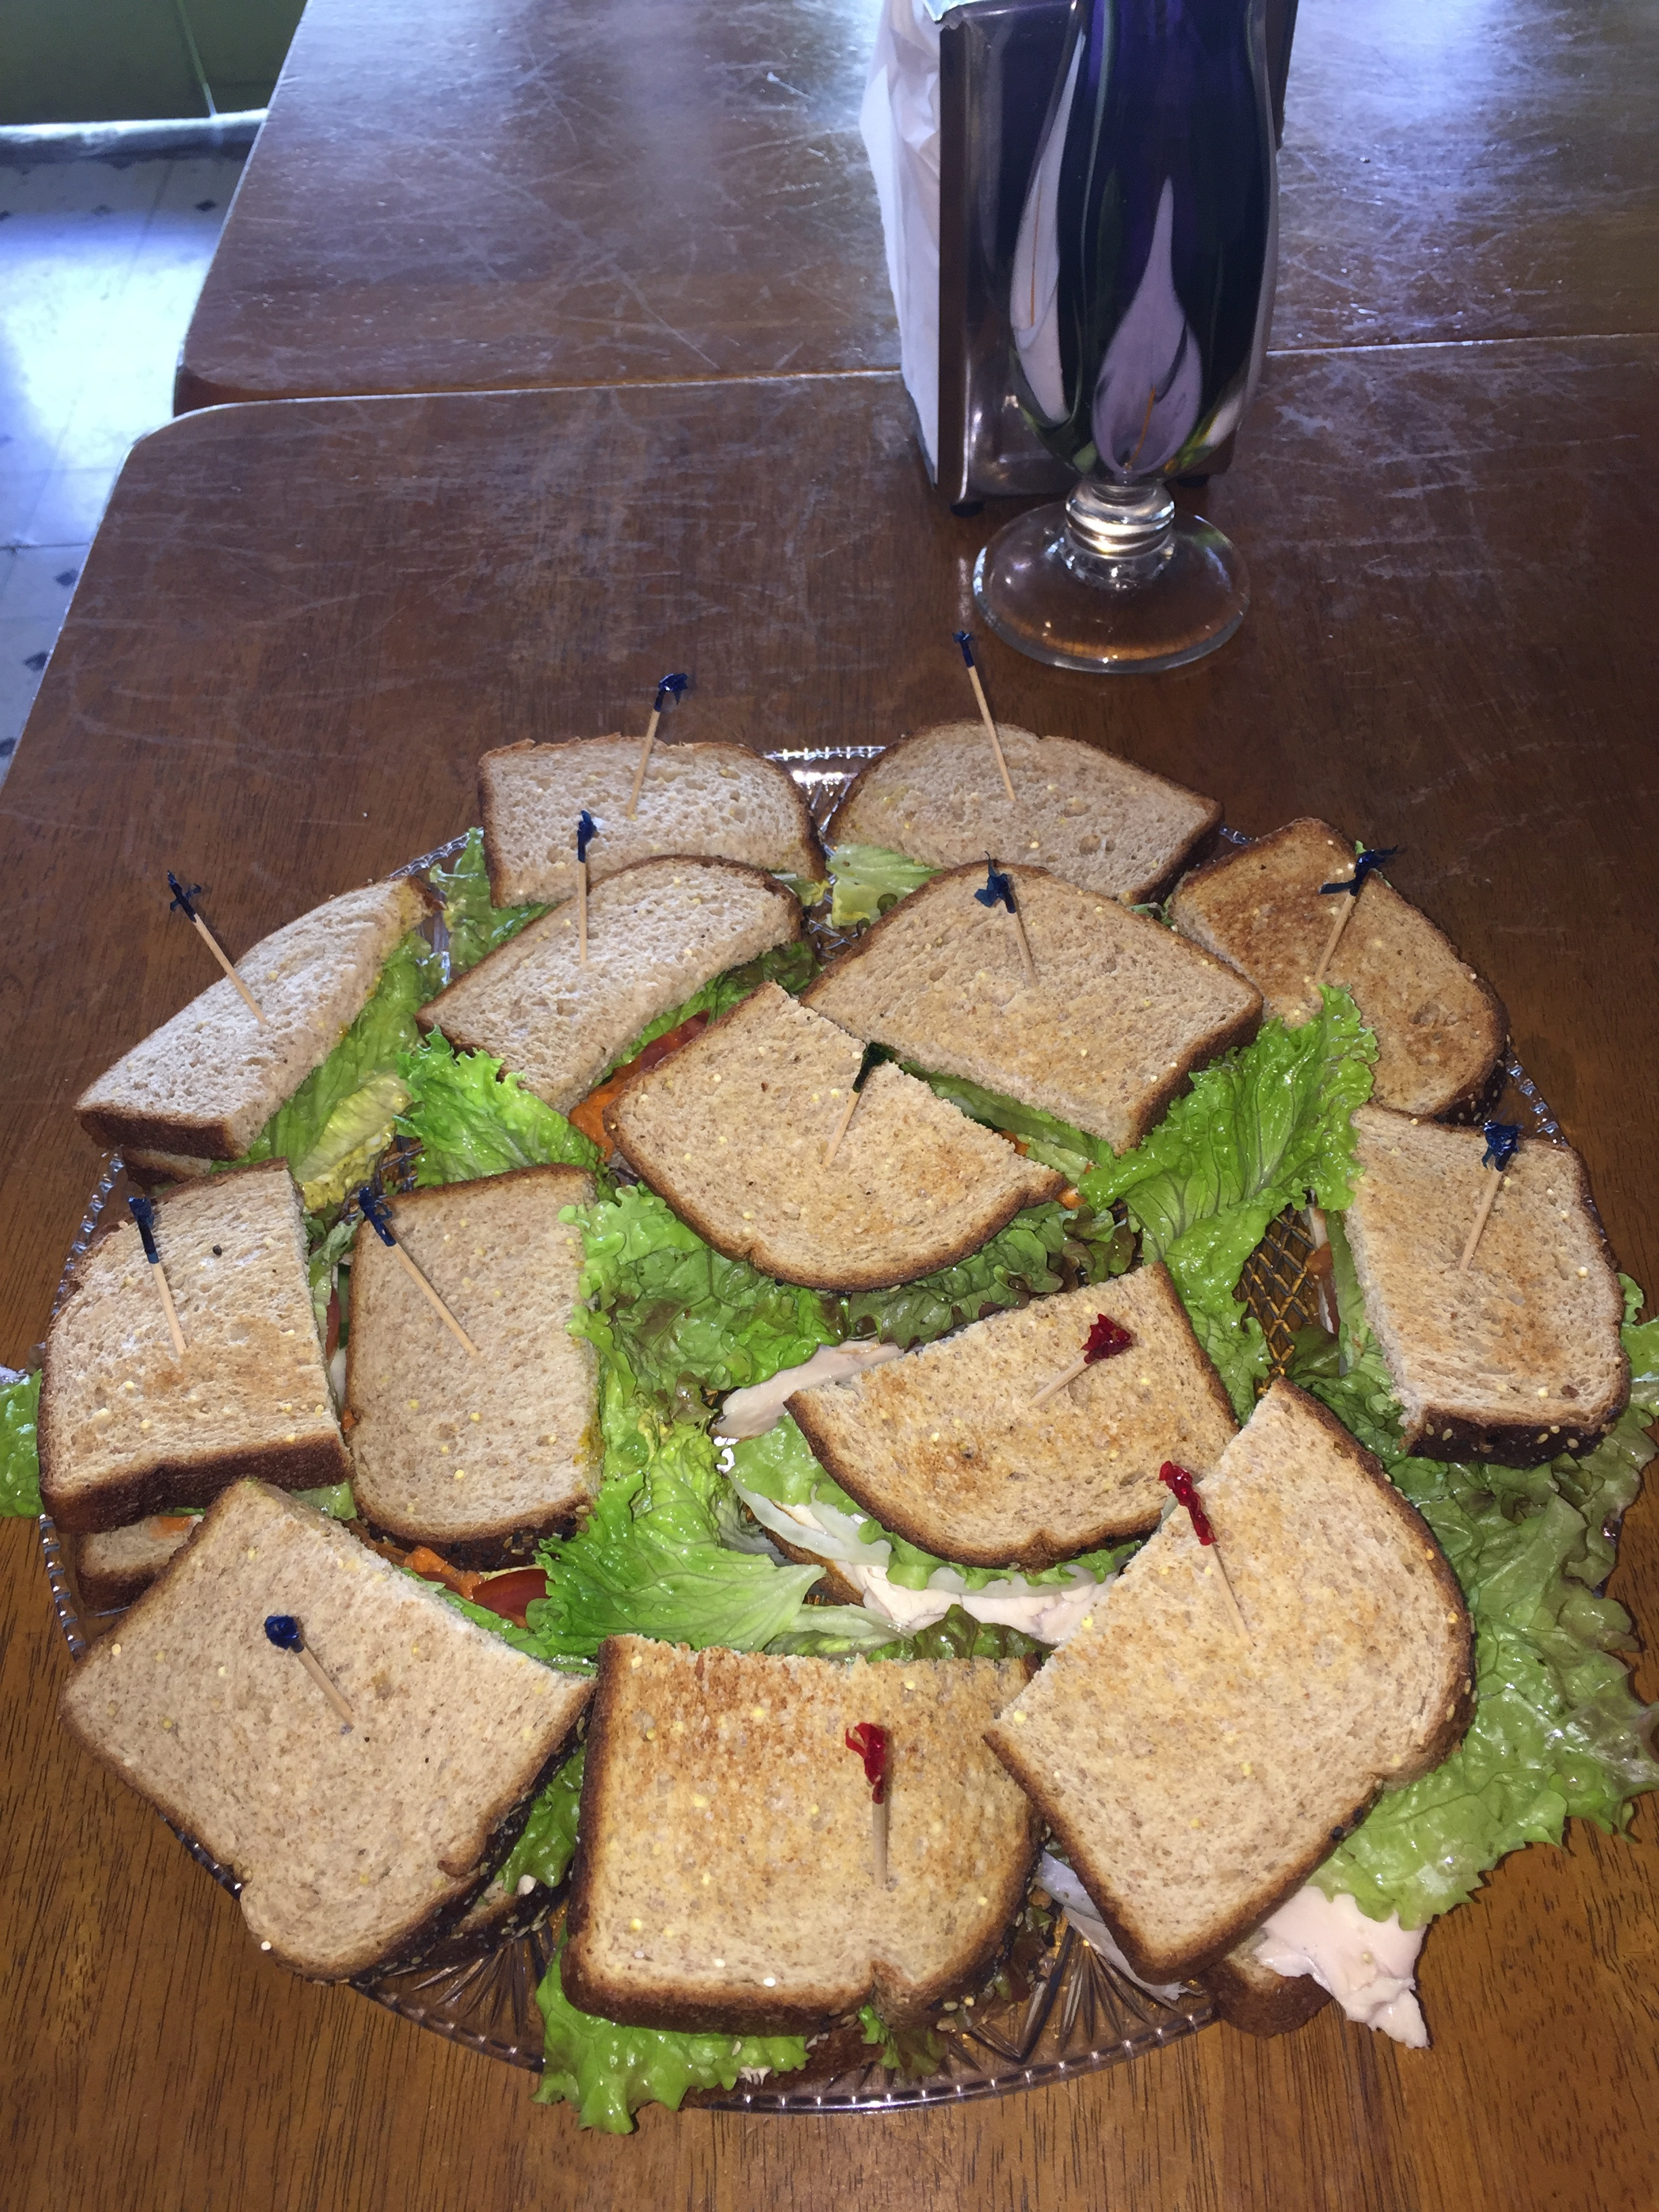 Sandwich platter for local business.